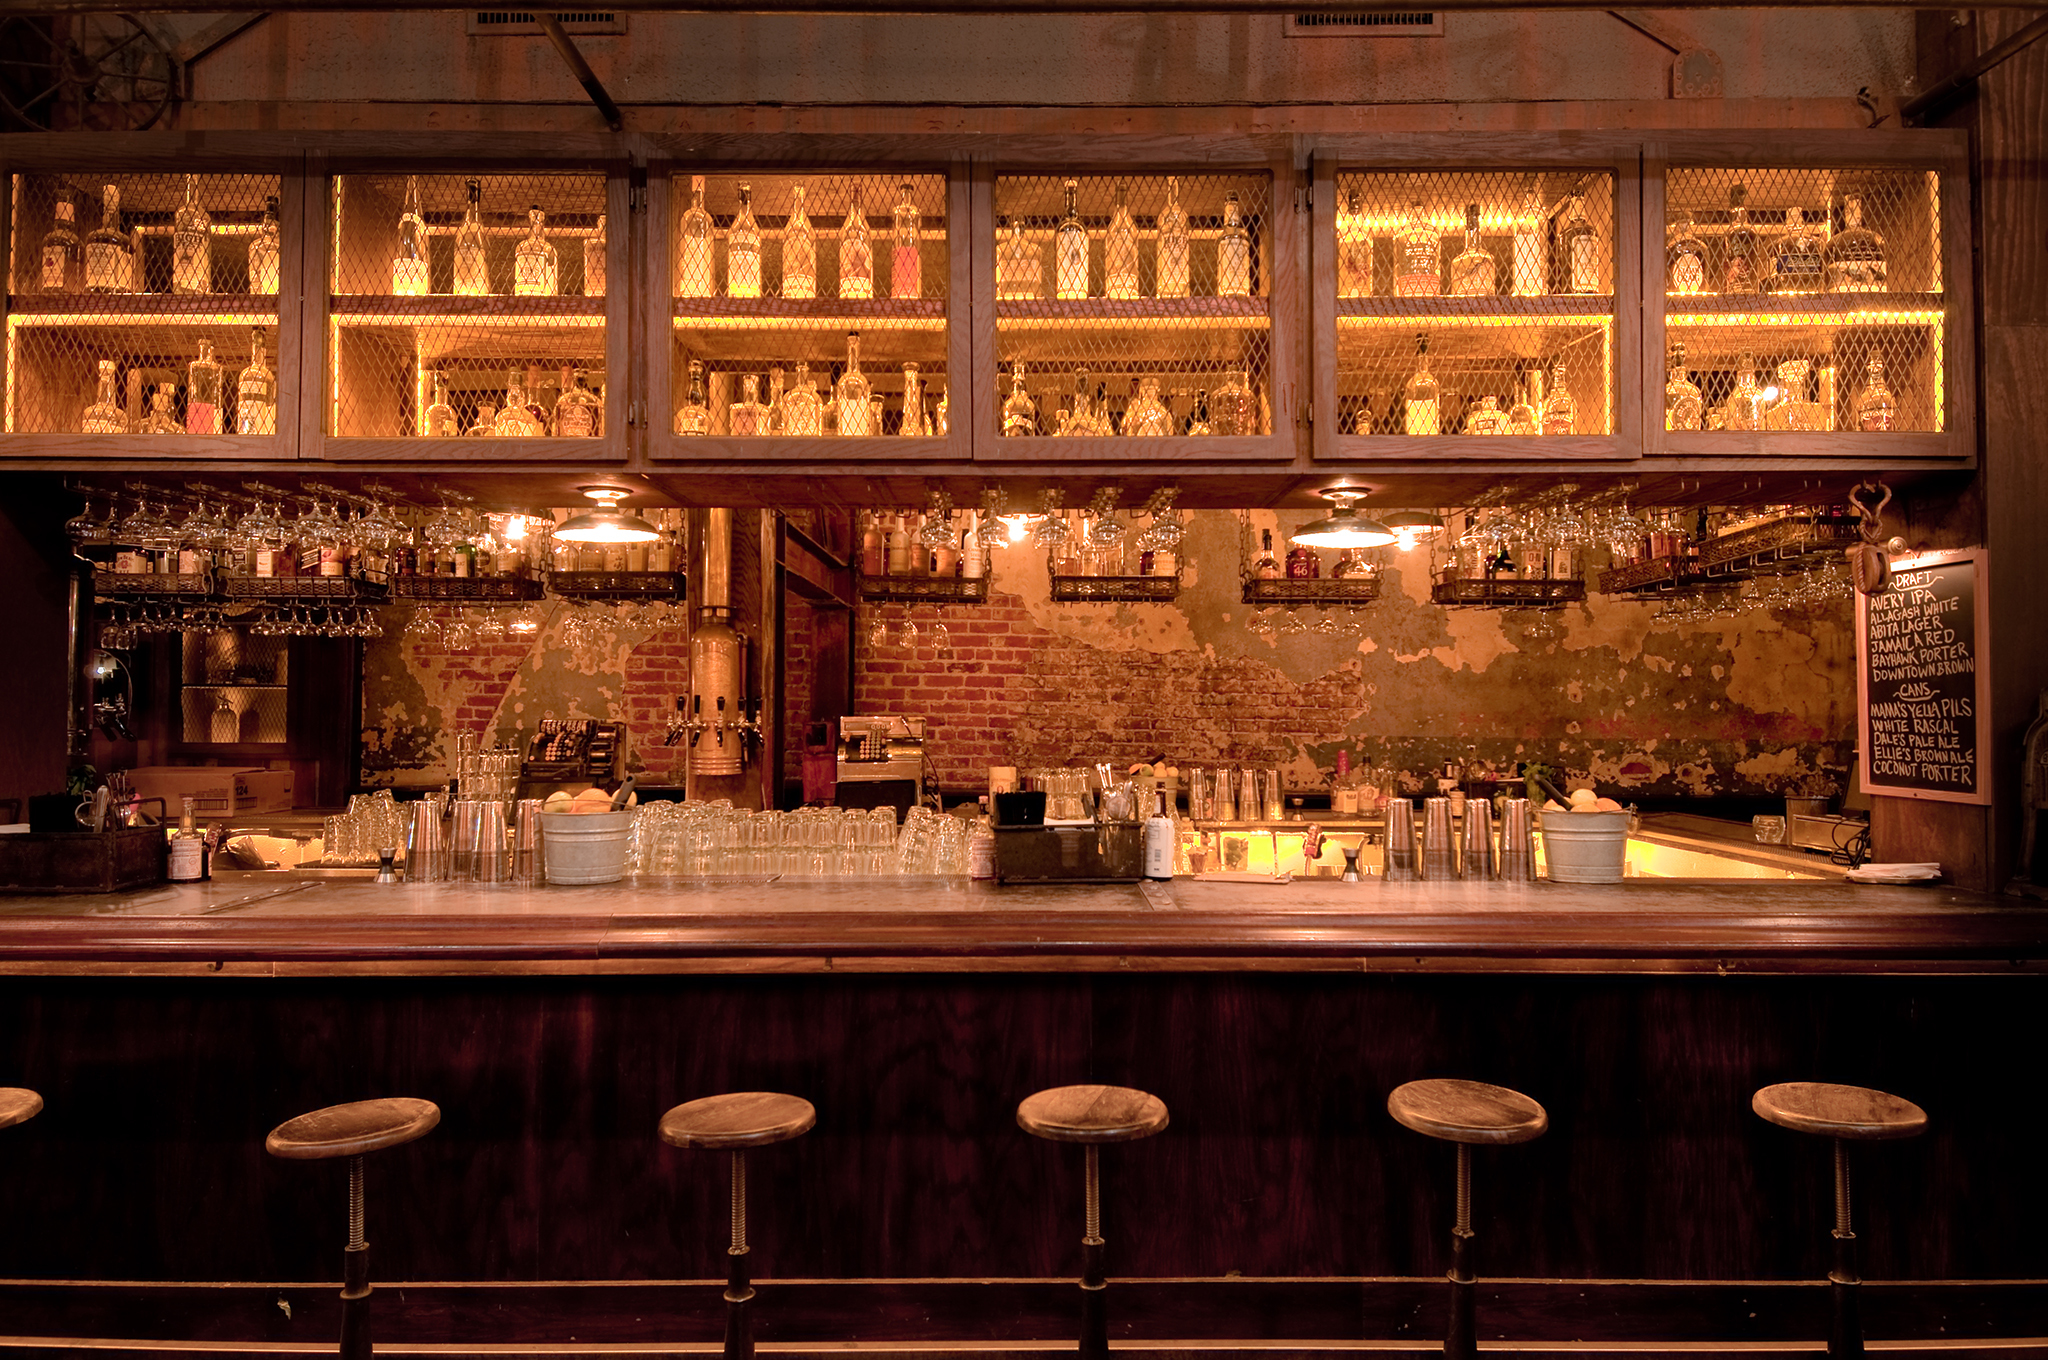 Bars | Los Angeles Bars, Reviews & Bar Events | Time Out Los Angeles